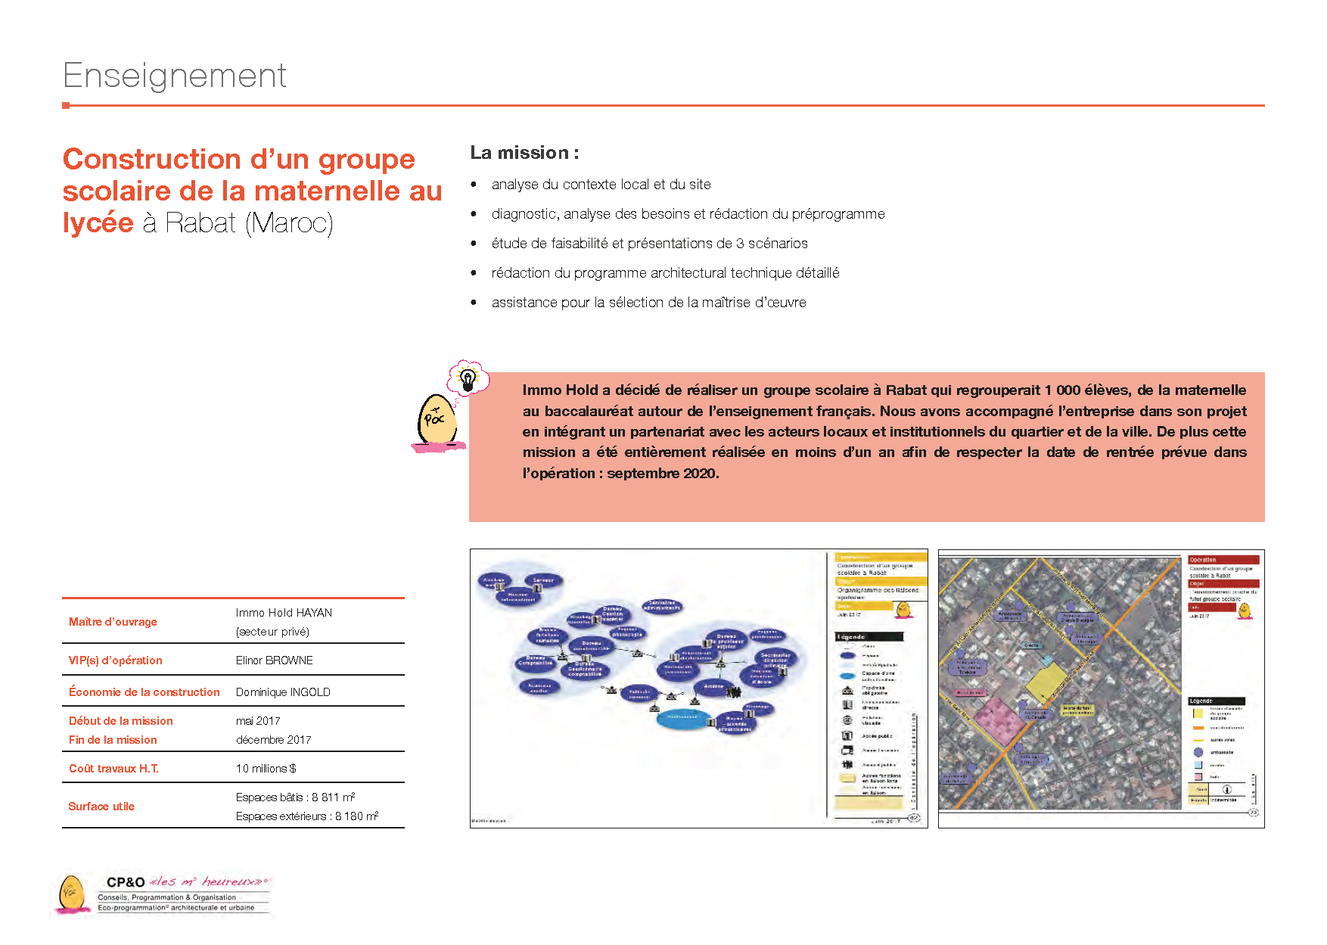 enseignement_Page_12.png